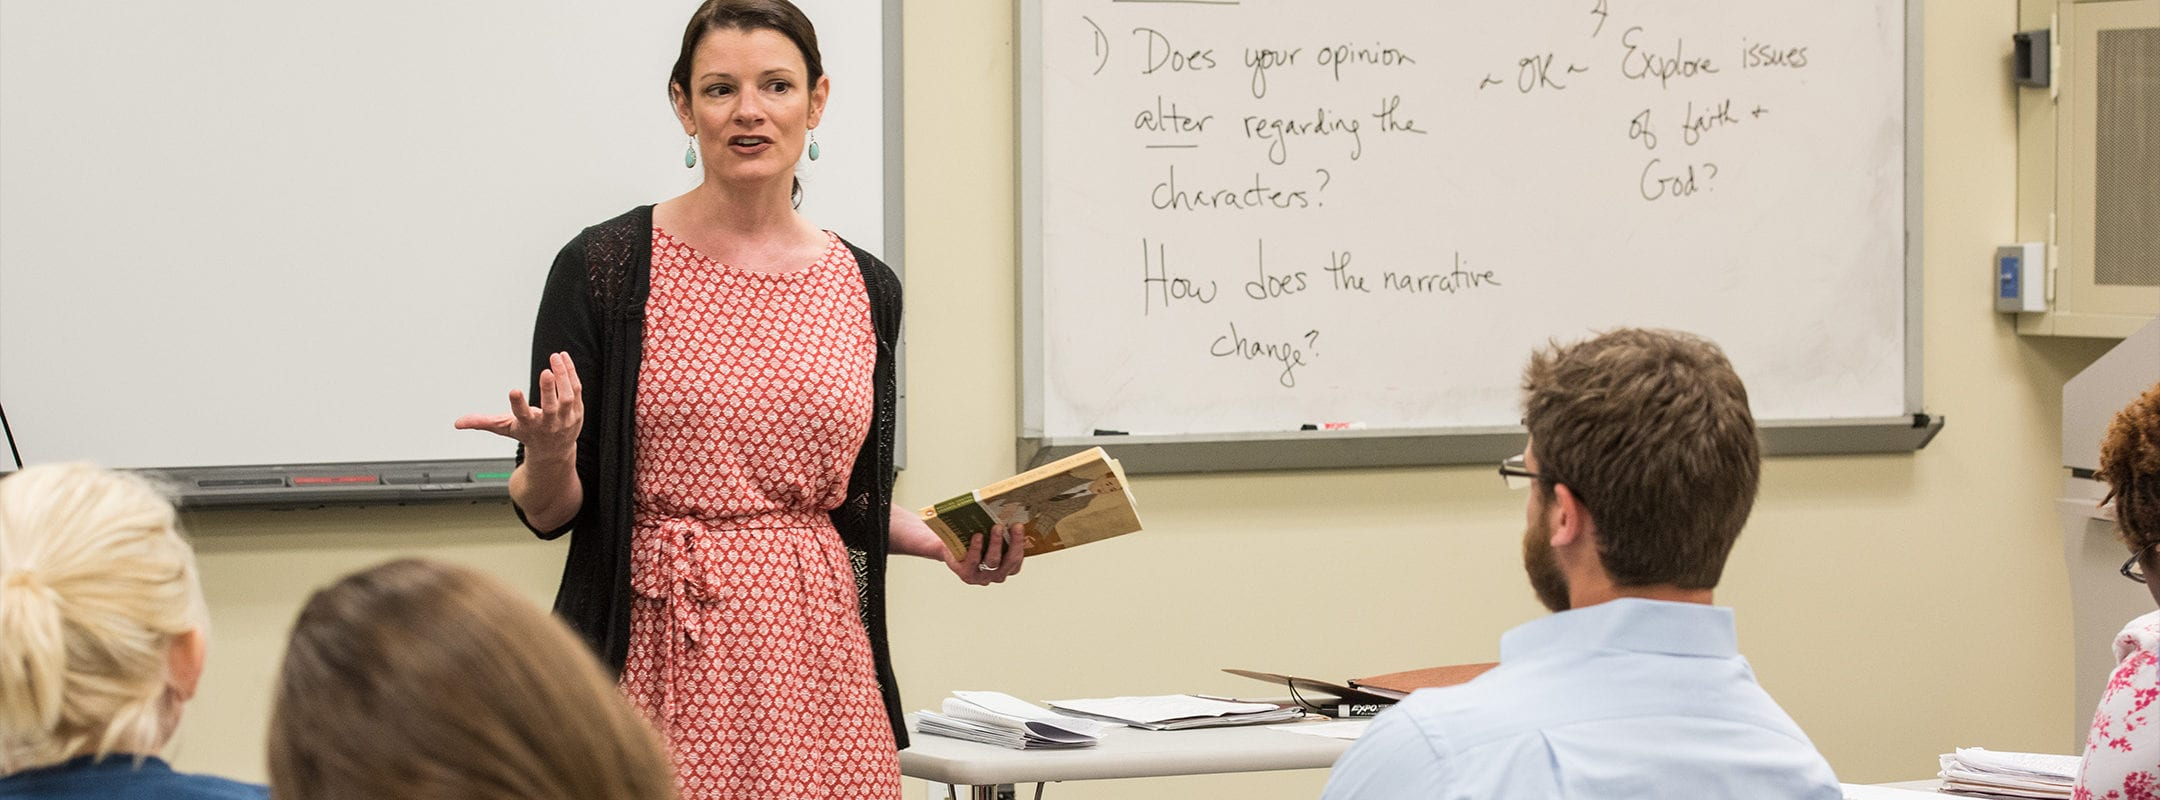 A female professor teaching literature in a classroom.